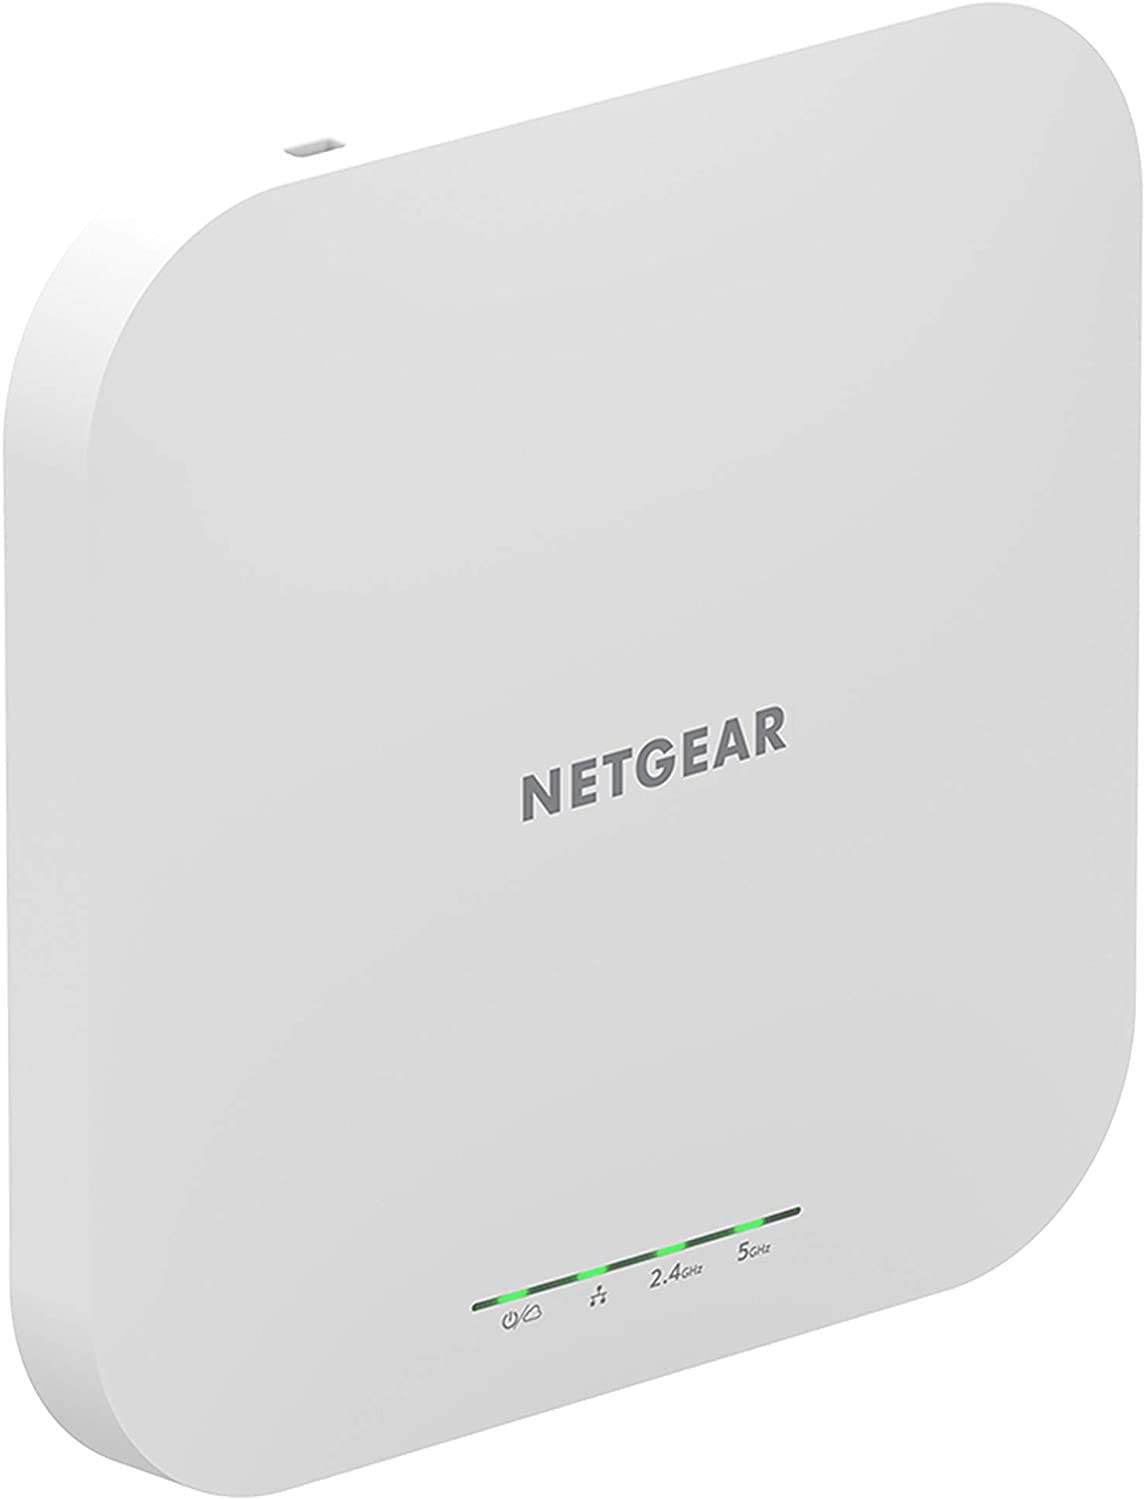 NETGEAR Wireless Access Point (WAX610PA) - WiFi 6 Dual-Band AX1800 Speed | Up to 250 Devices | 1 x 2.5G Ethernet LAN Port | 802.11ax | Insight Remote Management | PoE+ or Included Power Adapter